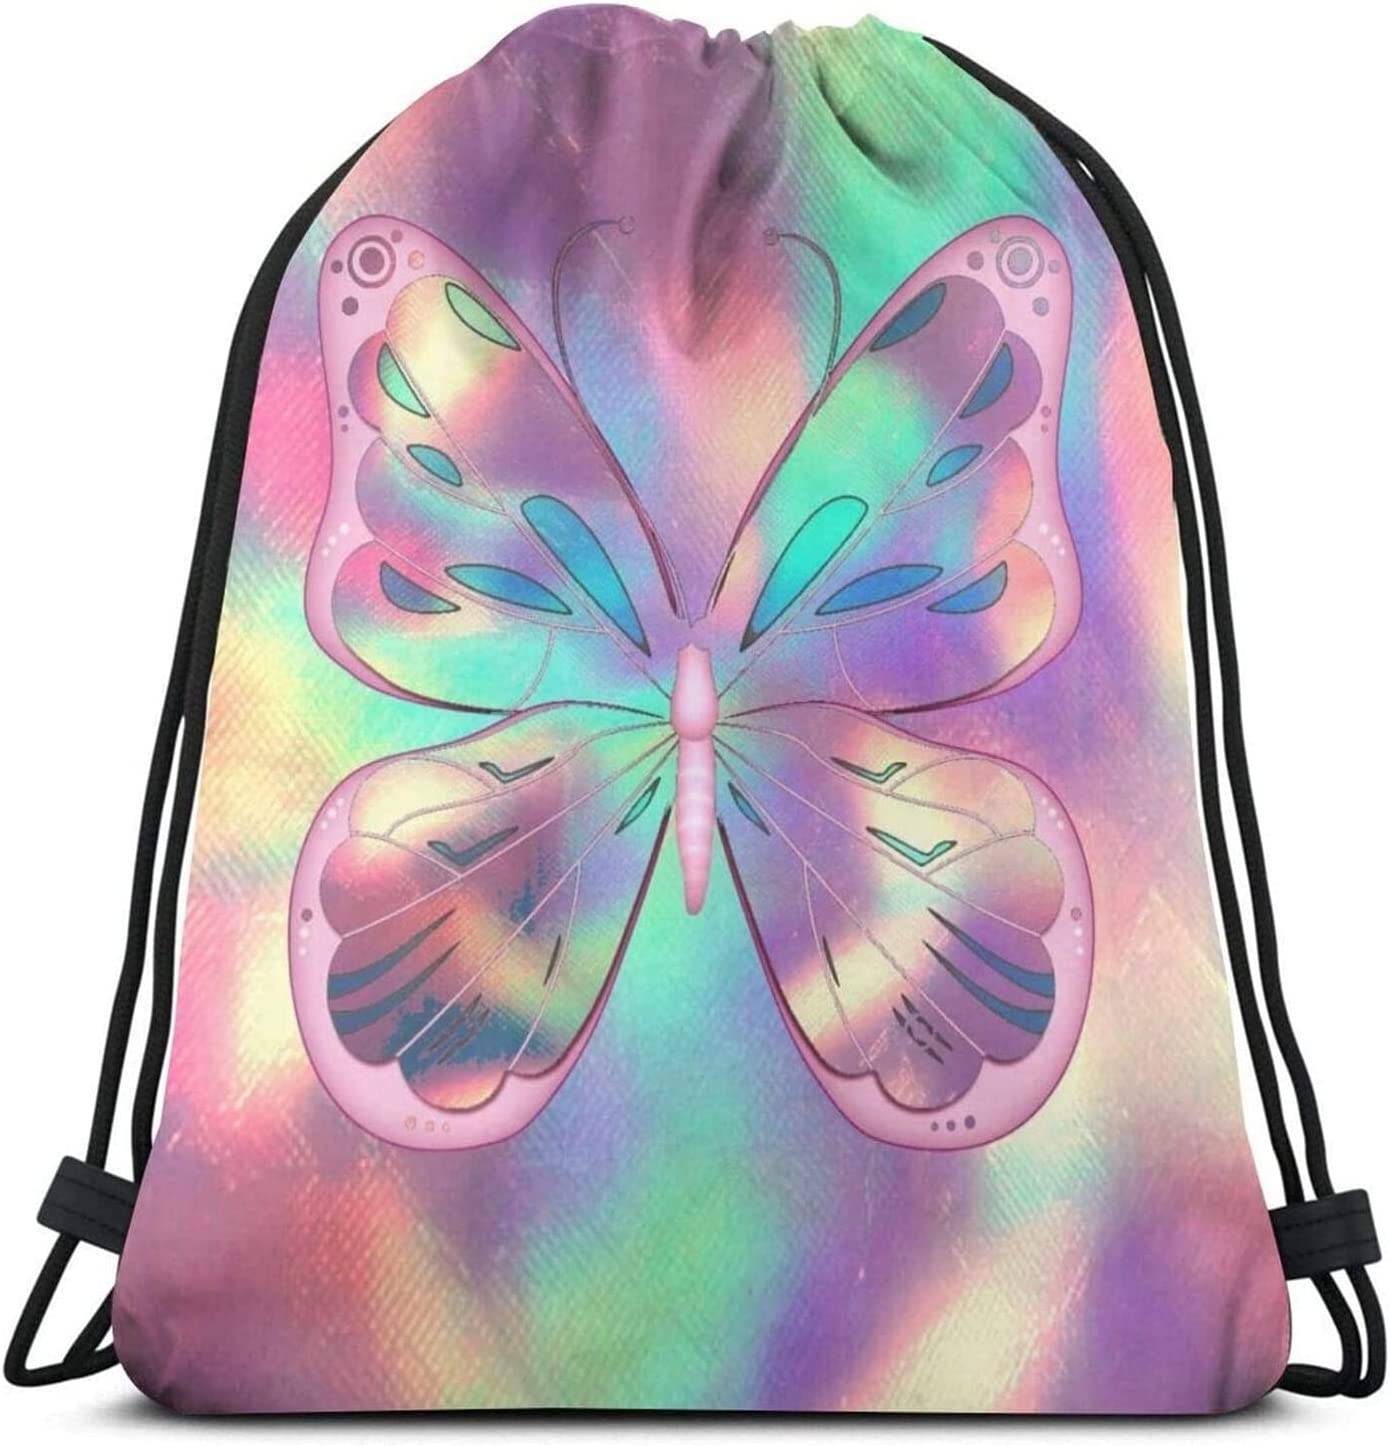 Pink New products world's highest quality popular Butterflies Texture 100% quality warranty! Drawstring Bags Sport Sack Backpack Gym